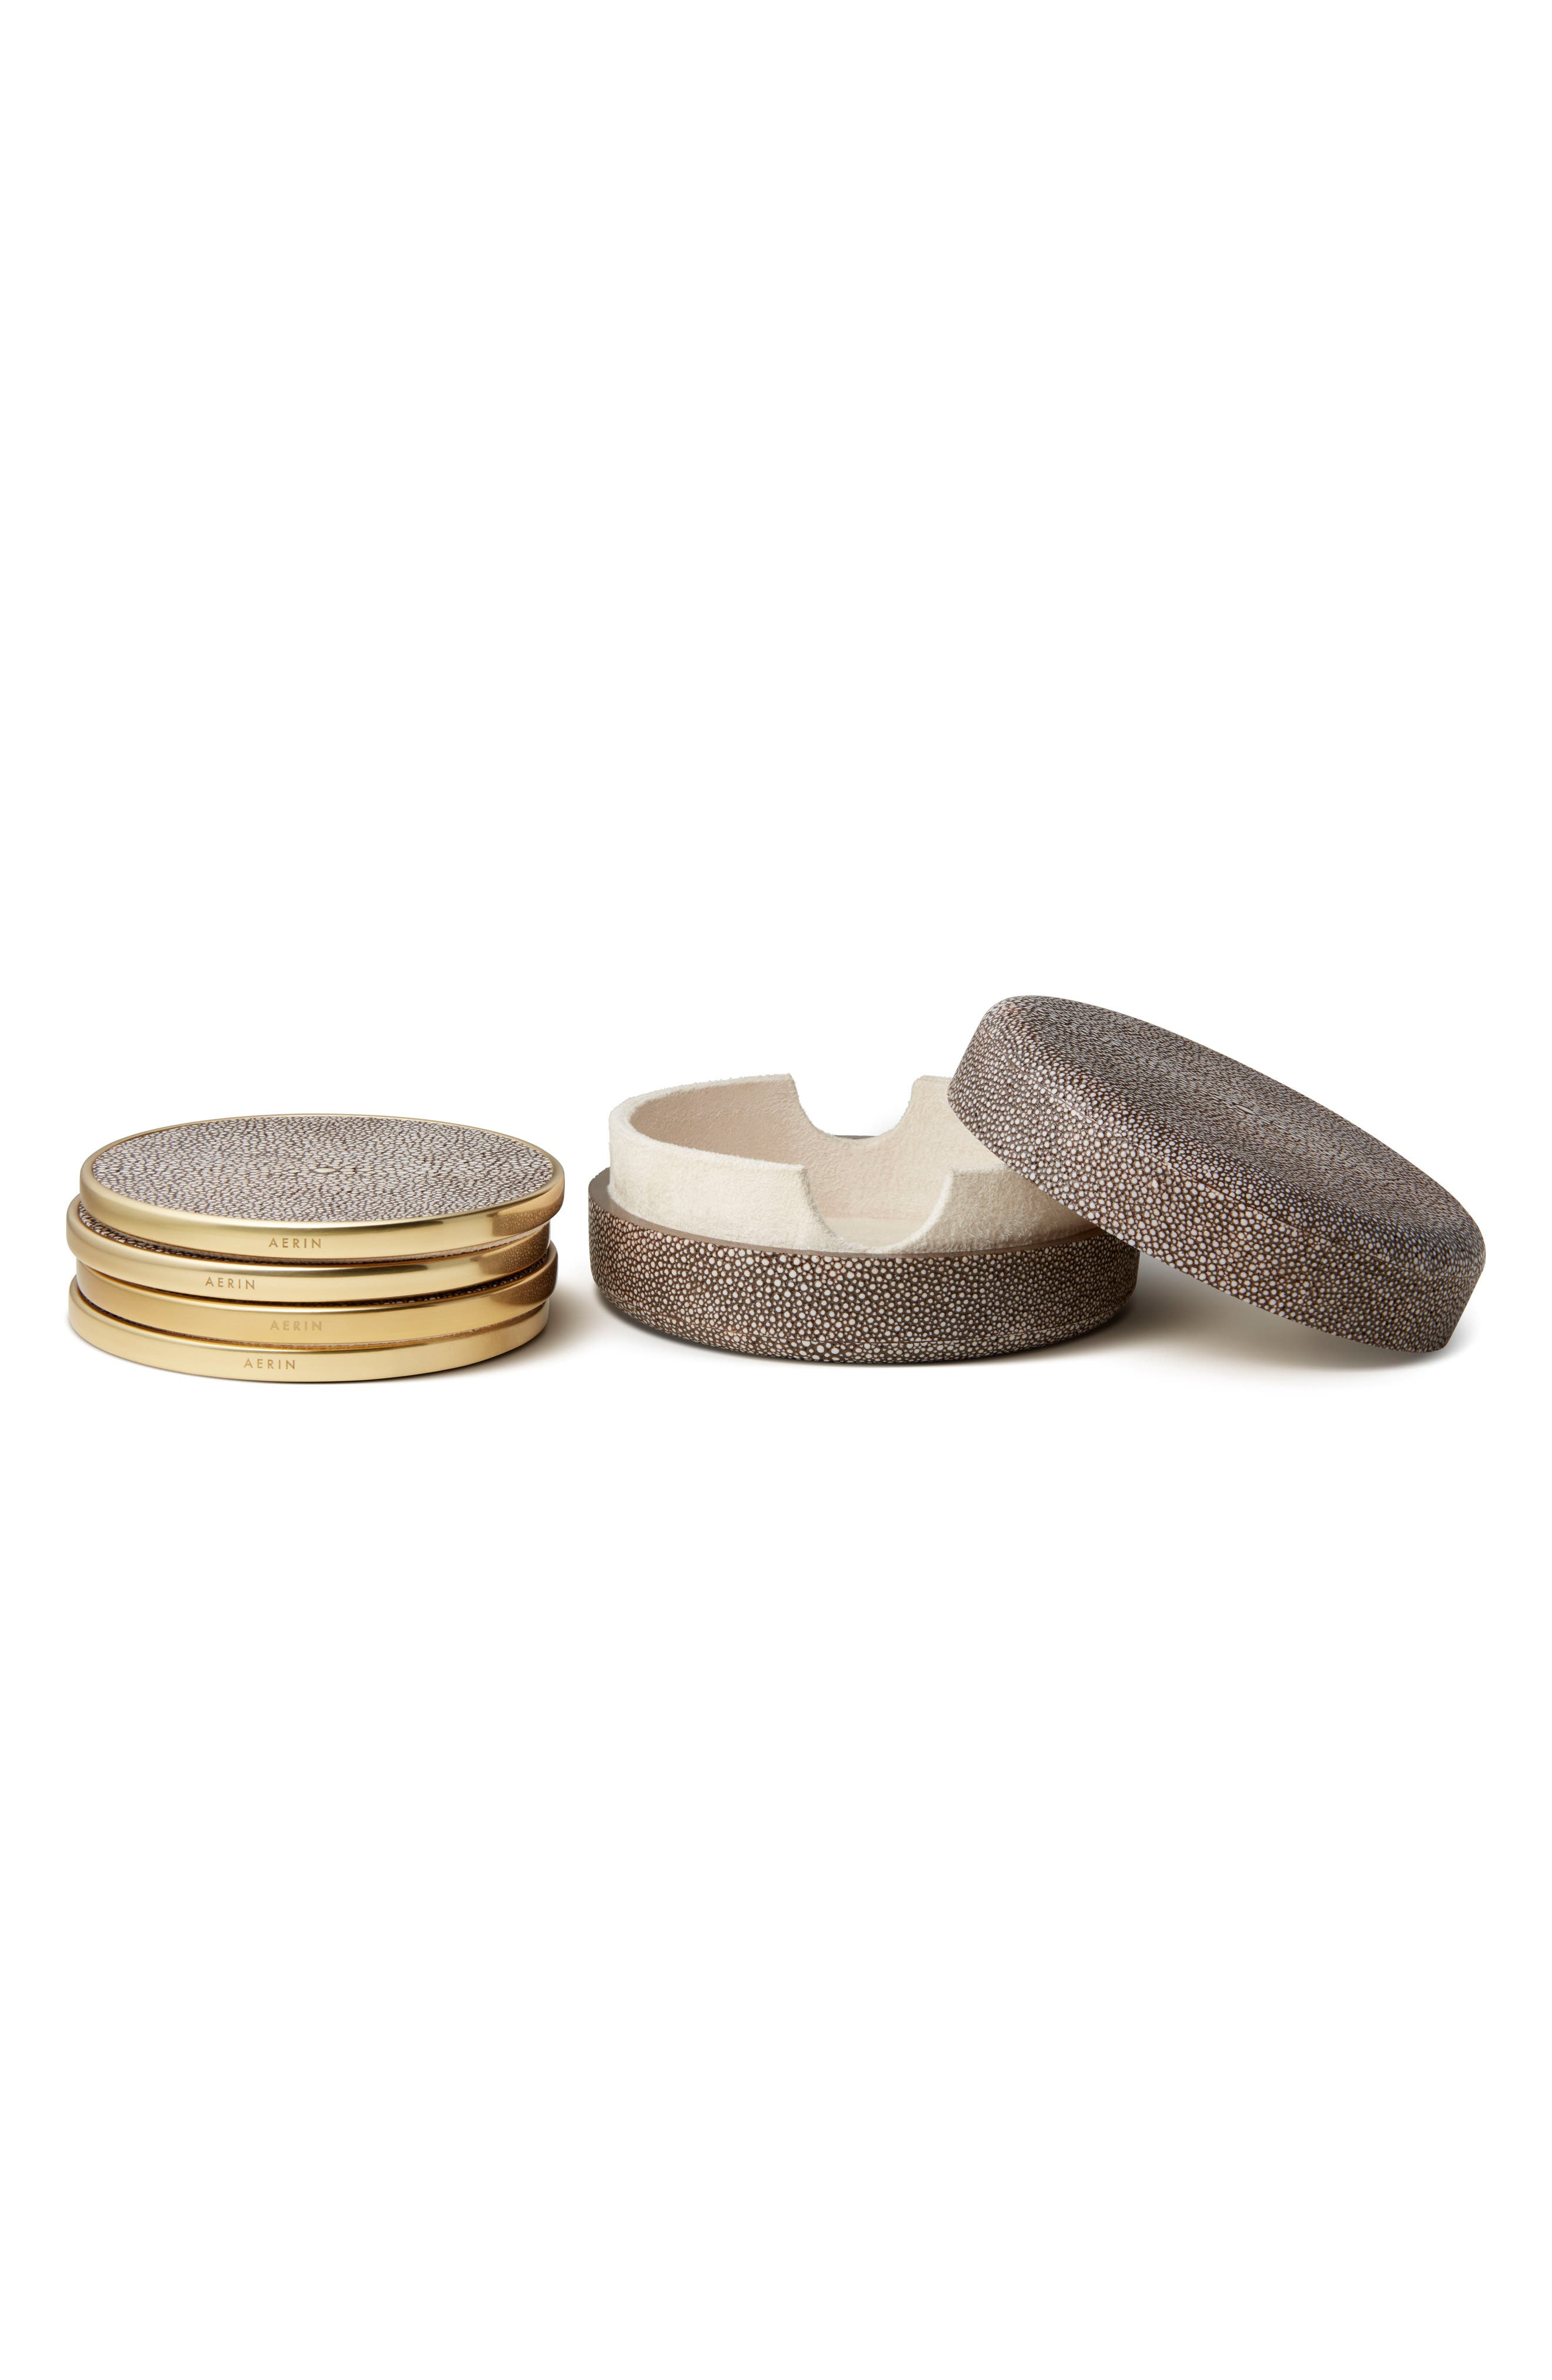 AERIN Chocolate Shagreen Set of 4 Coasters